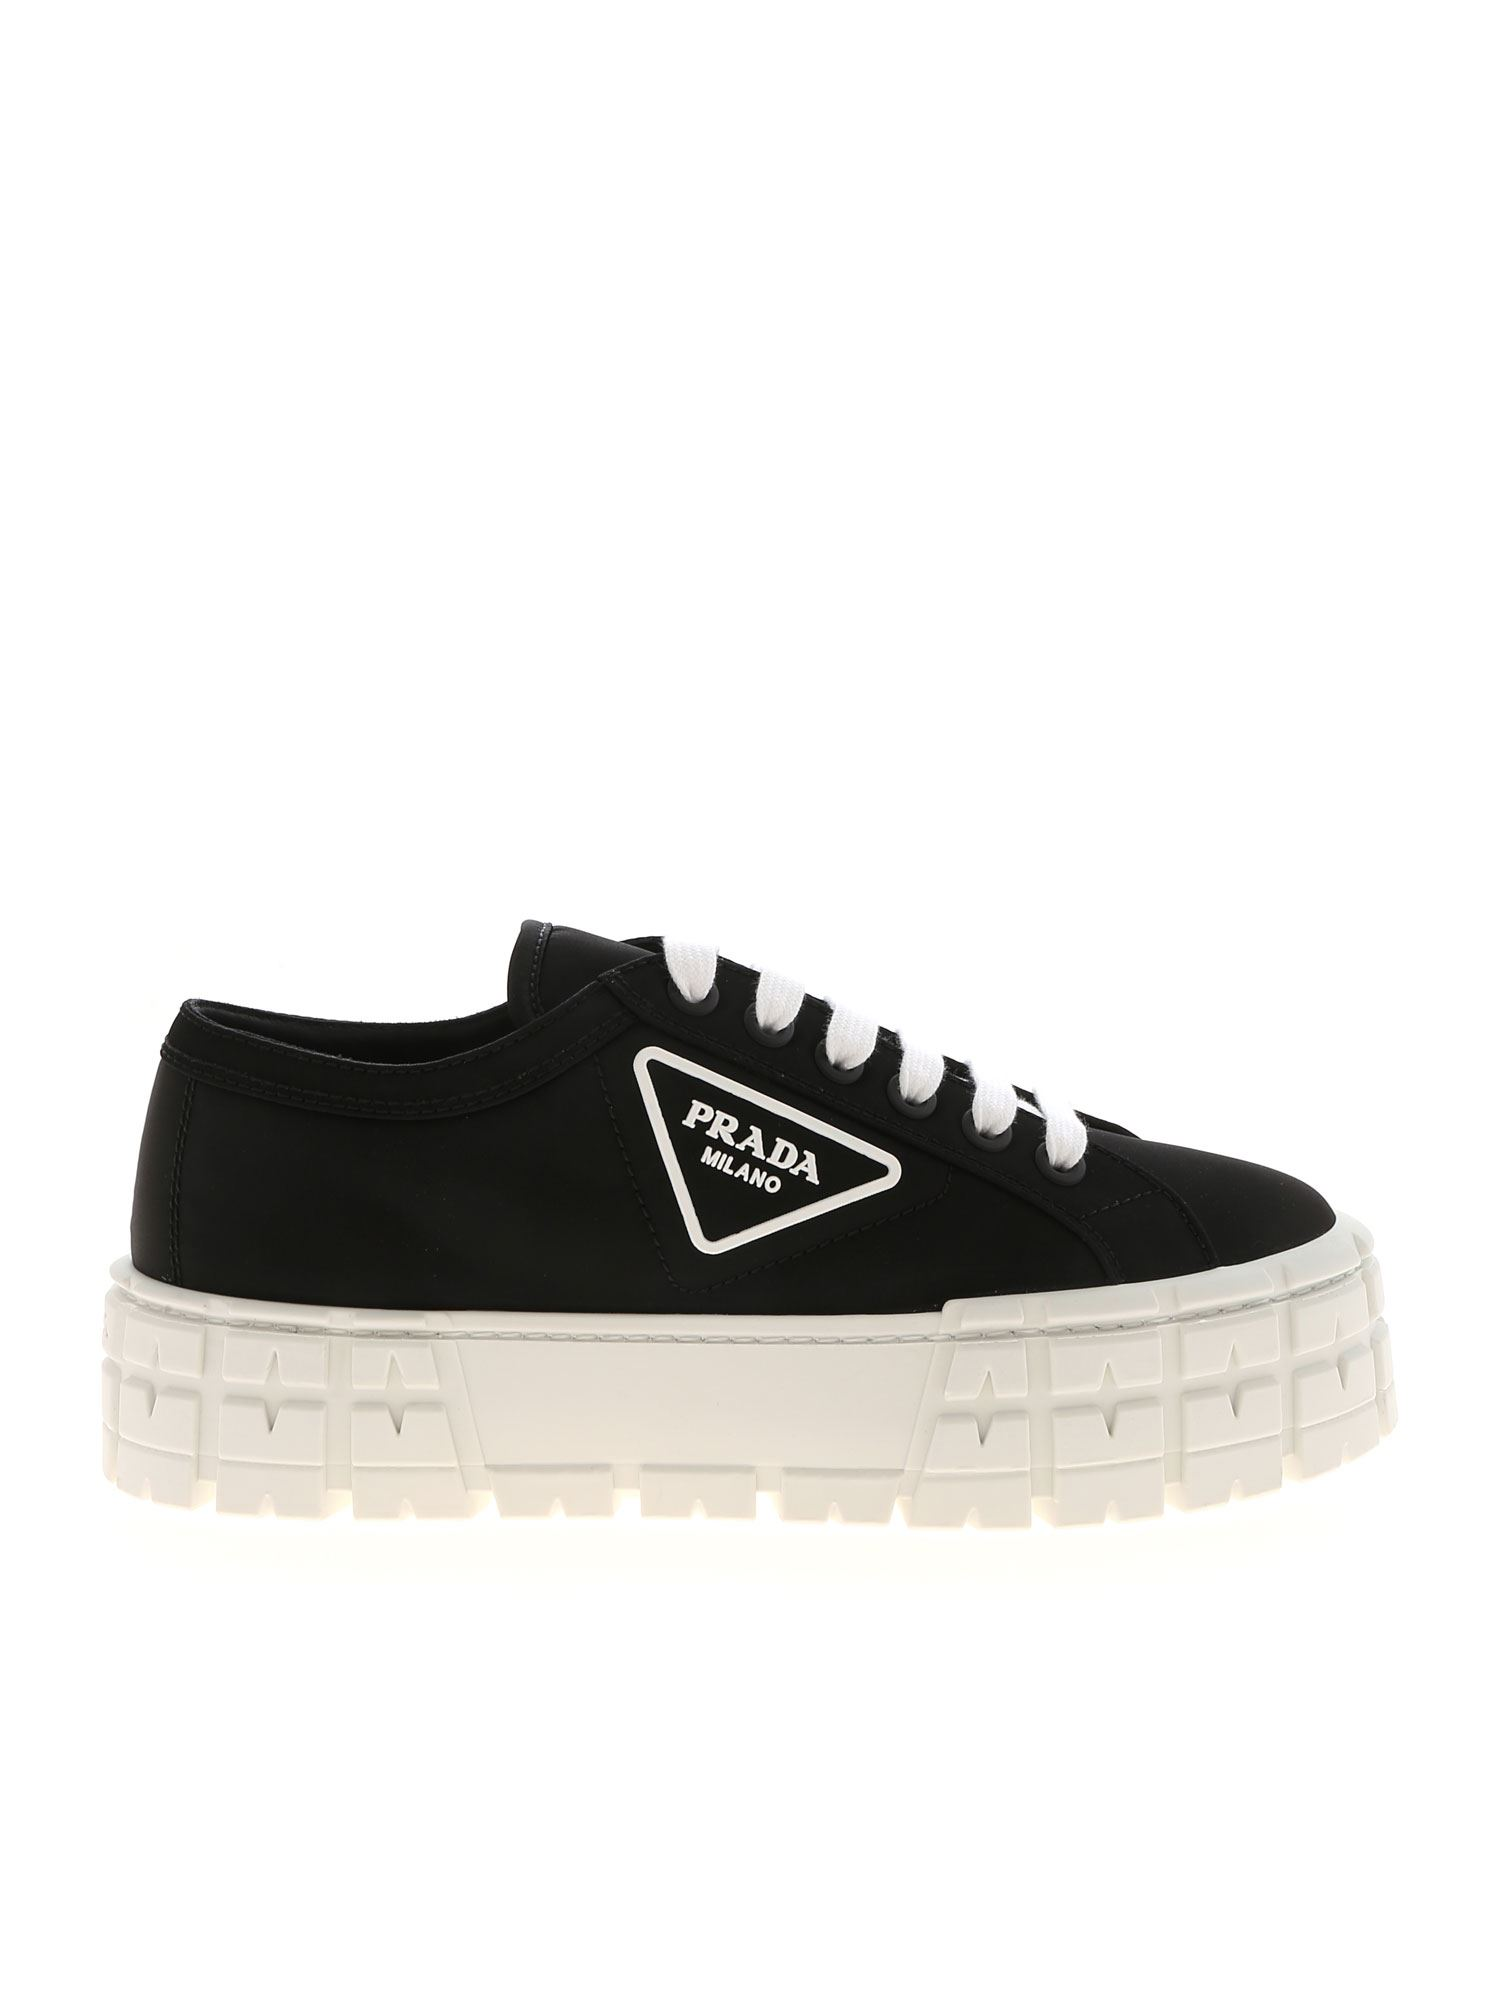 Prada PLATFORM SNEAKERS IN BLACK